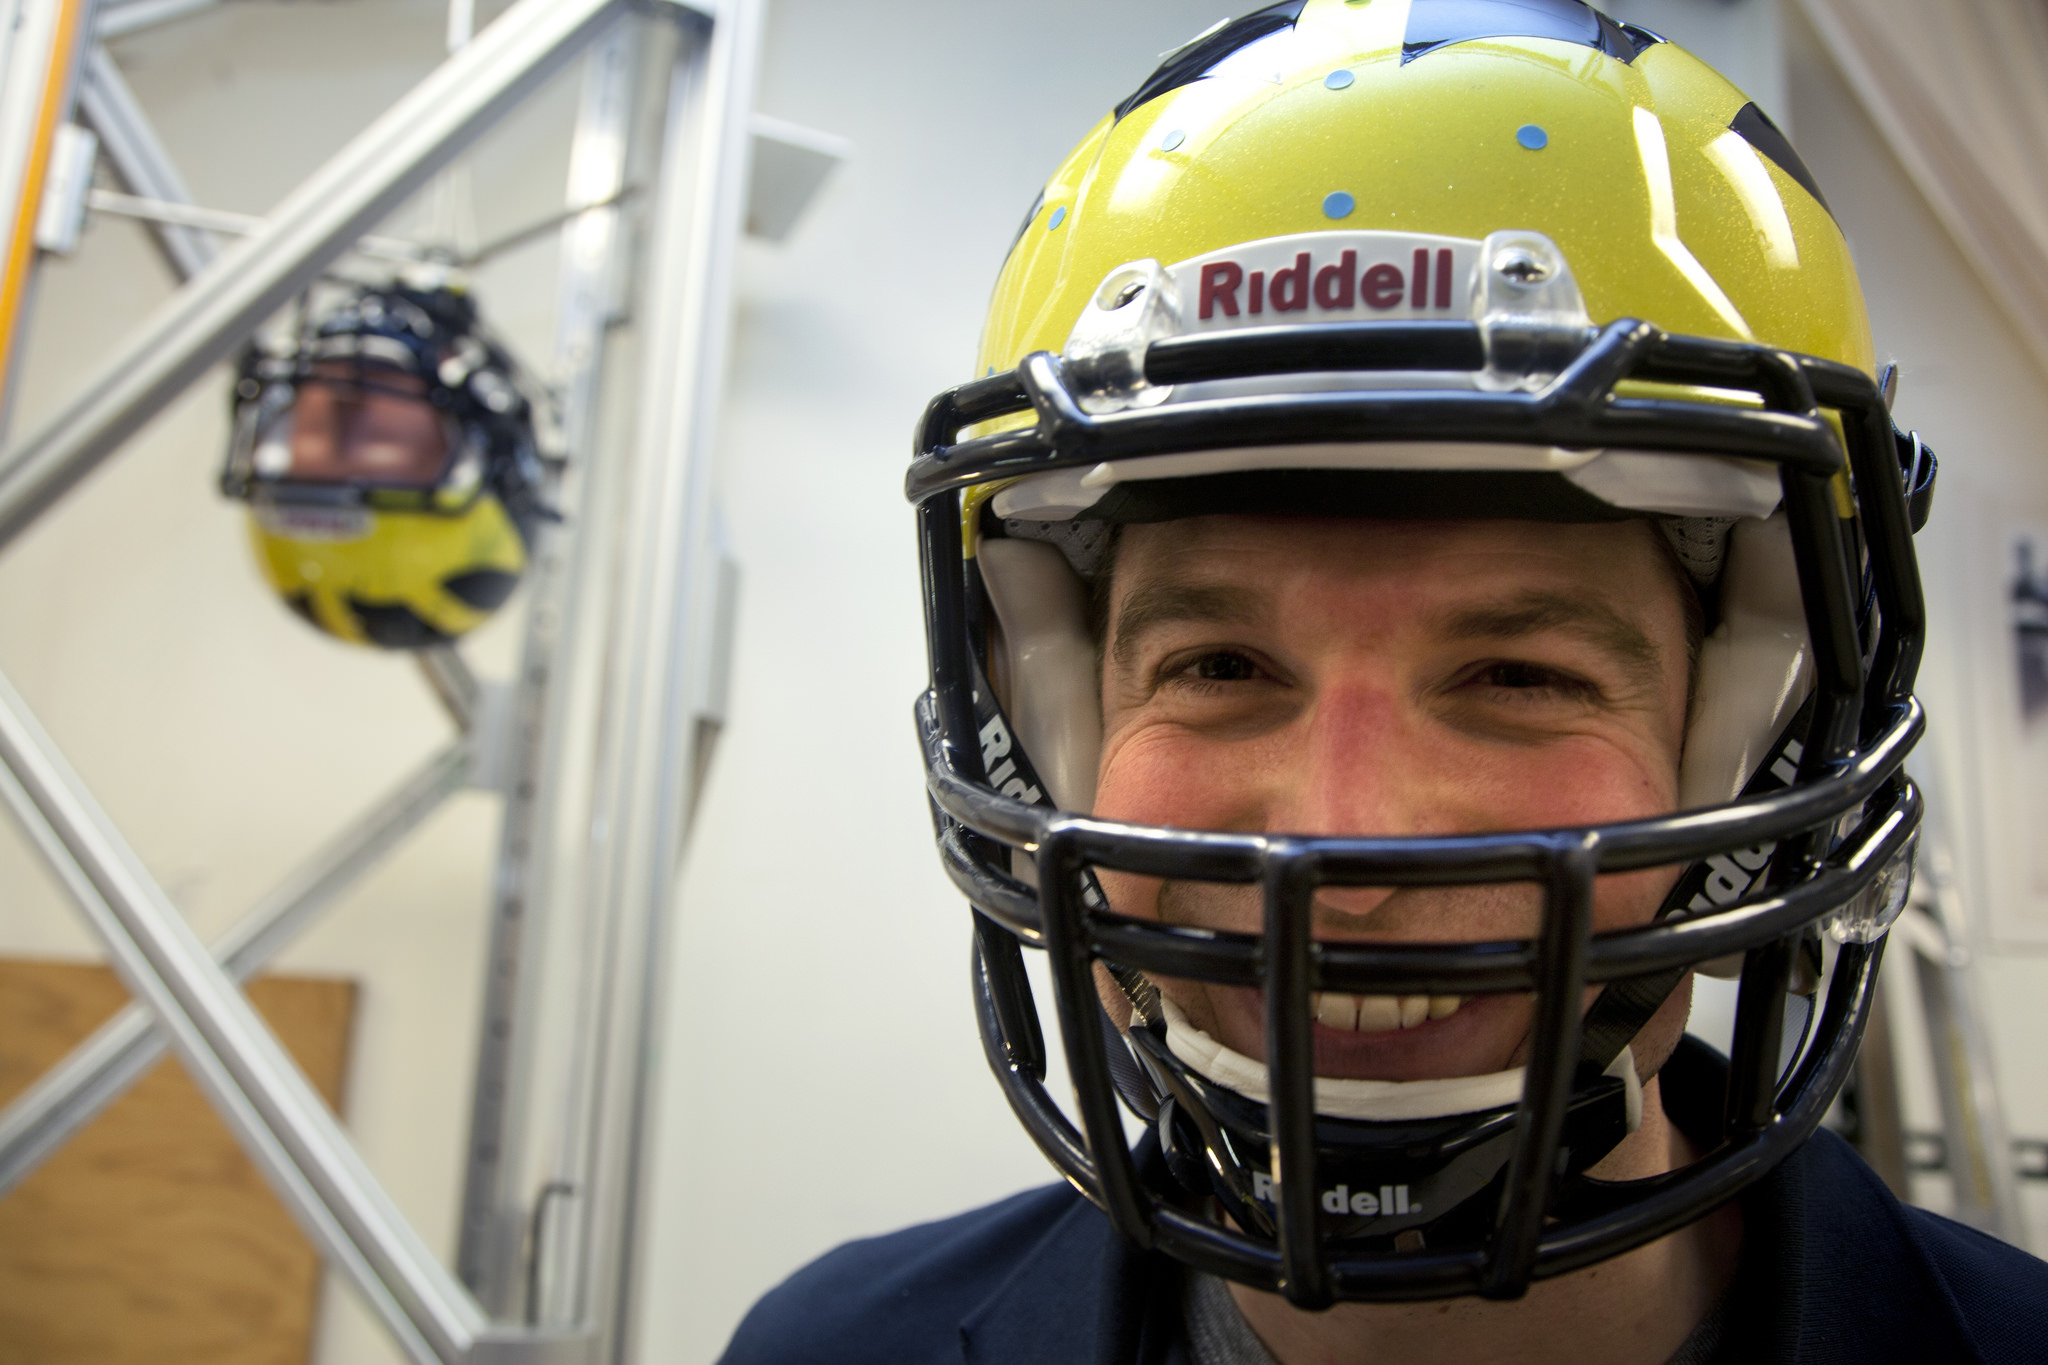 James Eckner, assistant professor of Physical Medicine and Rehabilitation poses in a Michigan football helmet as he gets ready to test helmet collision on a crash test dummy. Researchers in the Biomechanics Research Lab in the Department of Mechanical Engineering test new sensors that are designed to tell players and their coaches how hard they're hit. Such information can help in concussion diagnosis. Photo by Marcin Szczepanski, Michigan Engineering